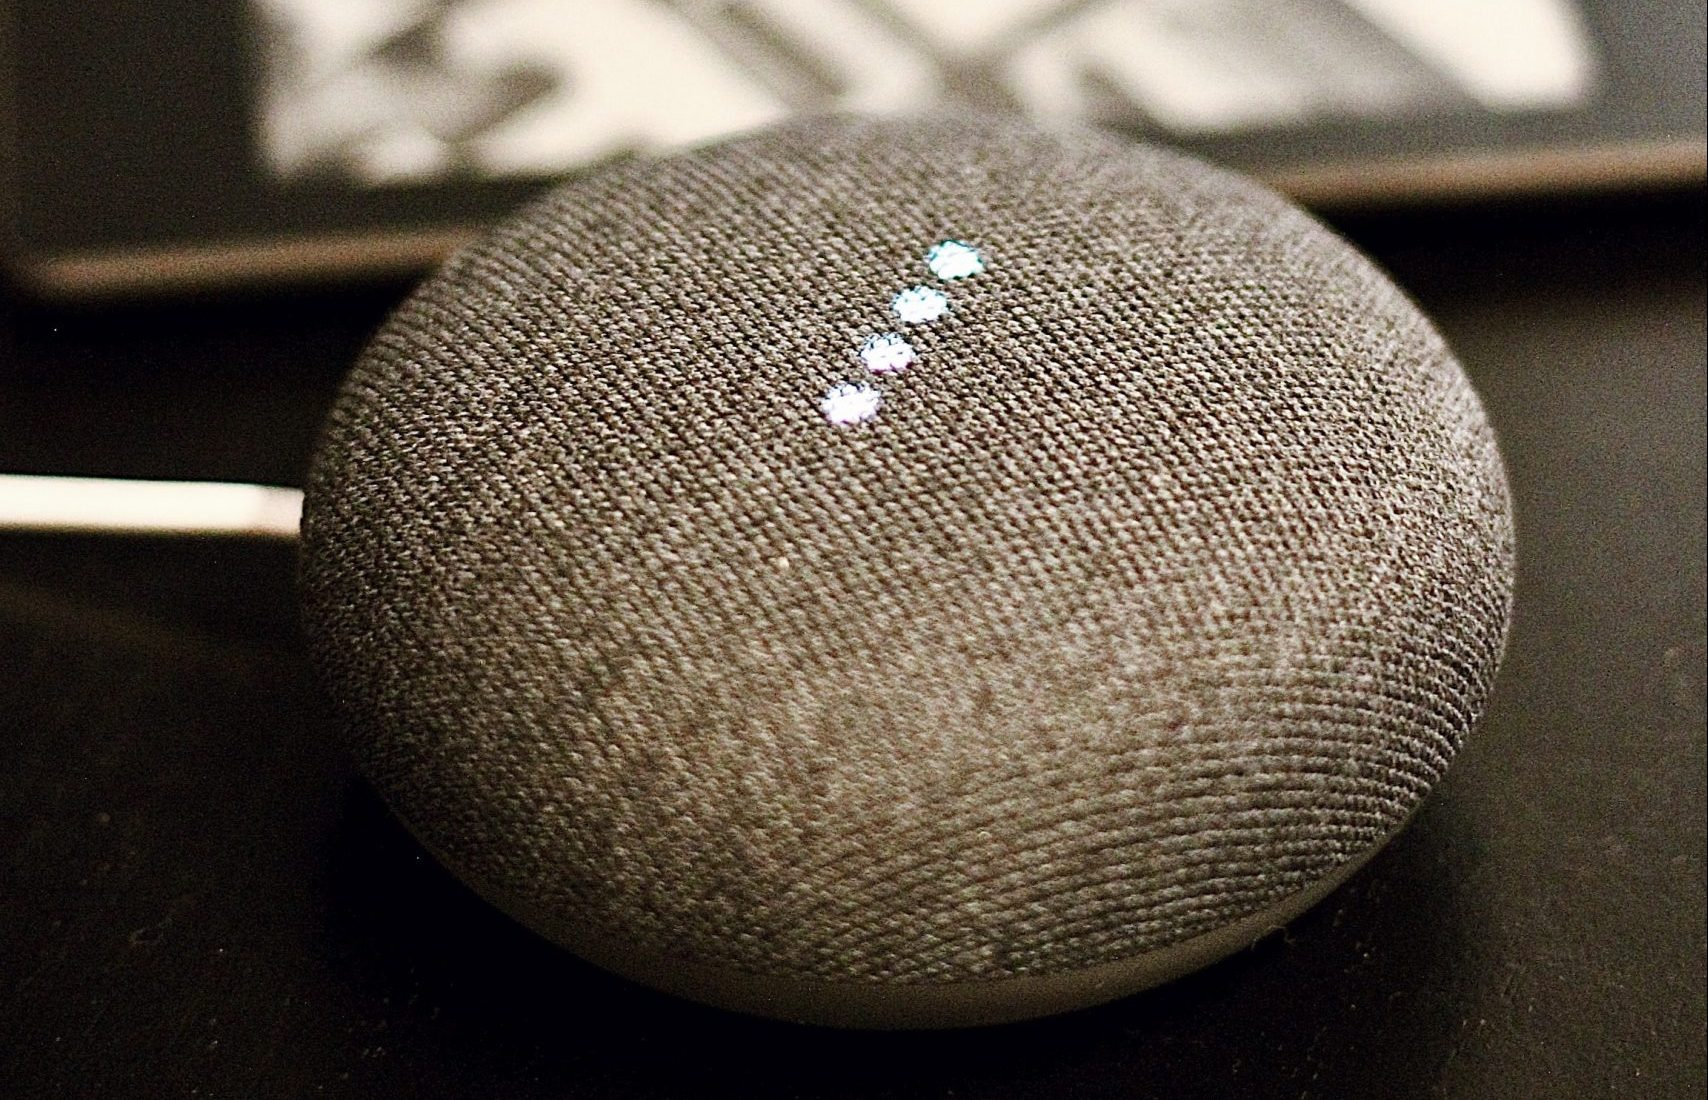 Developing for Smart Voice Assistants Such As Google Home